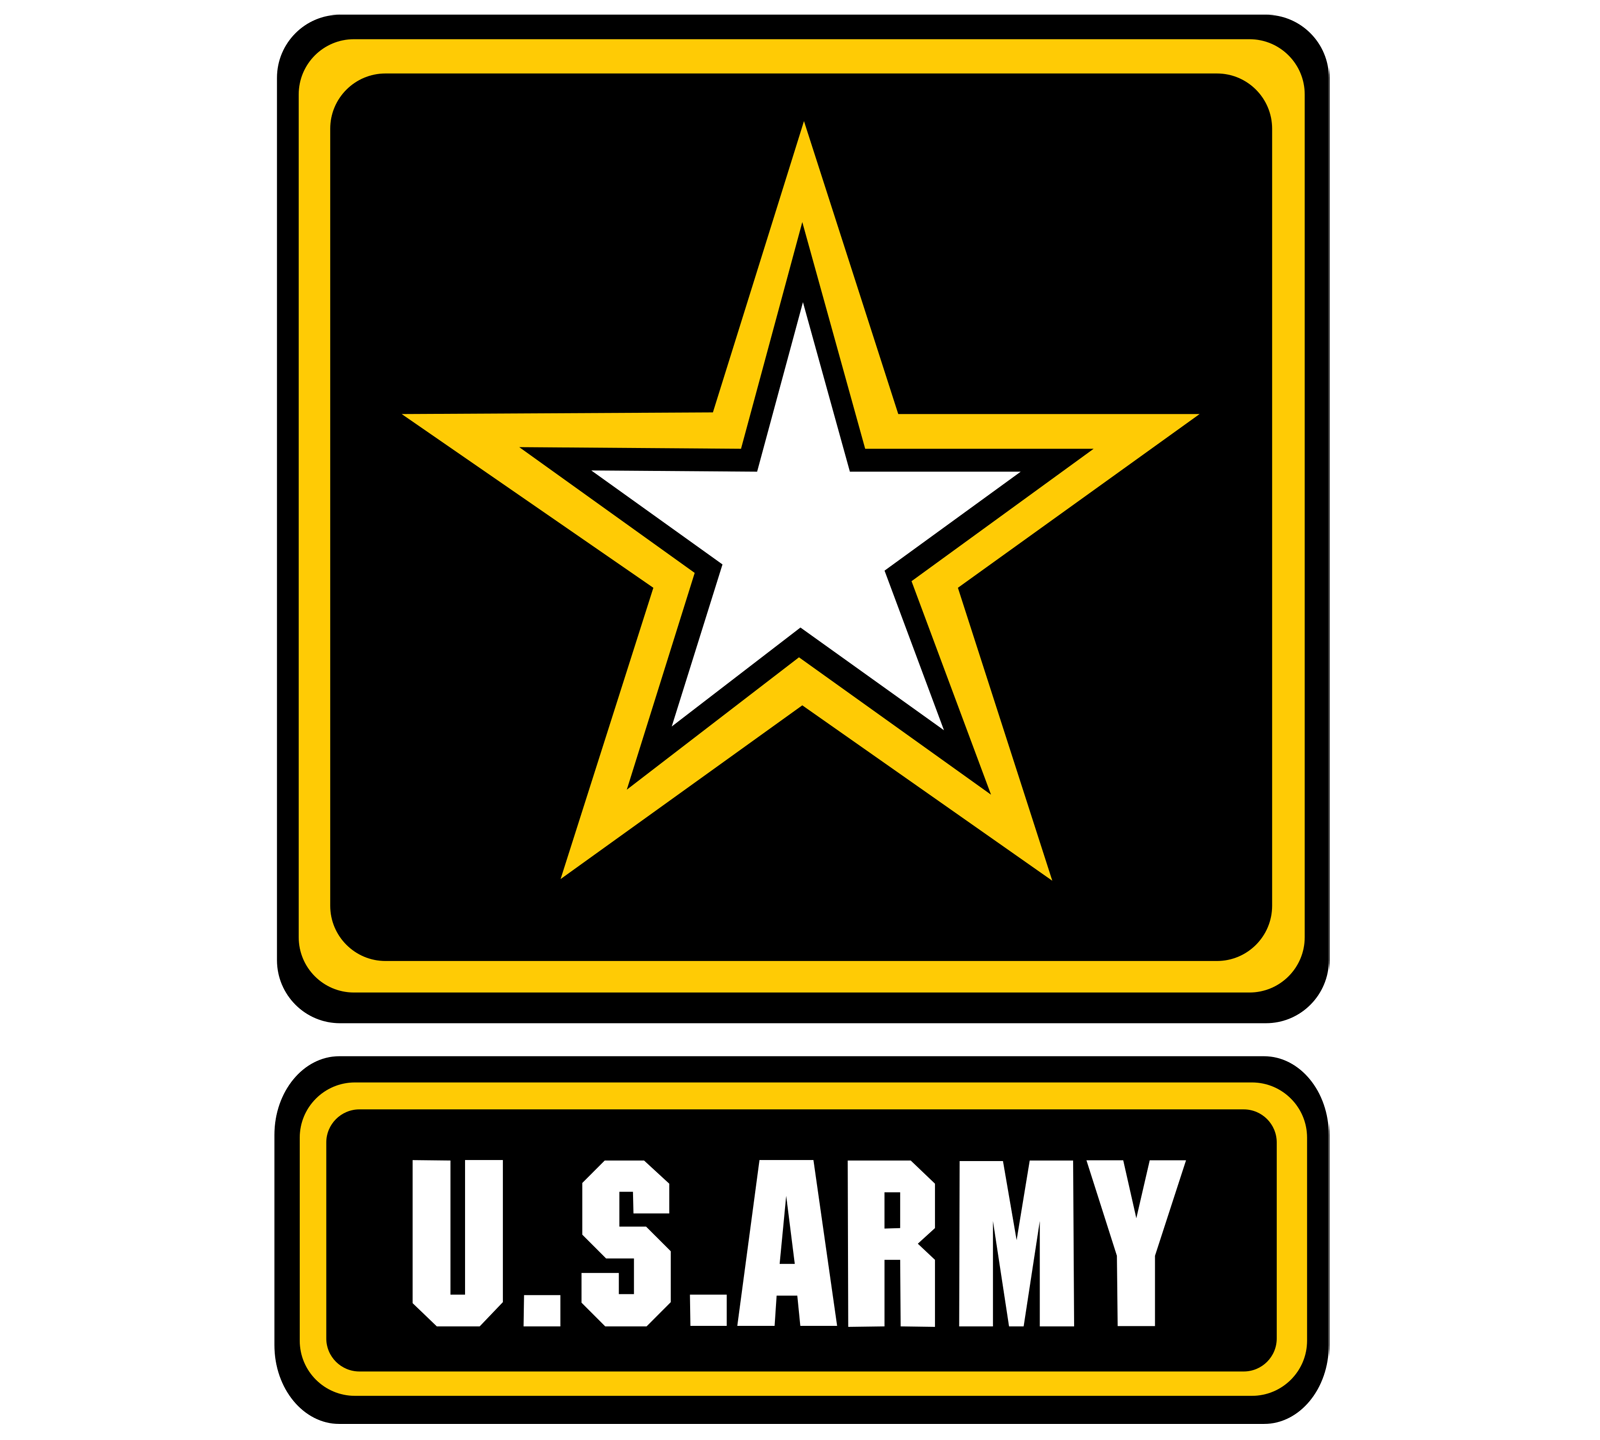 u s army logo u s army symbol meaning history and evolution rh 1000logos net army logos images army logos and emblems